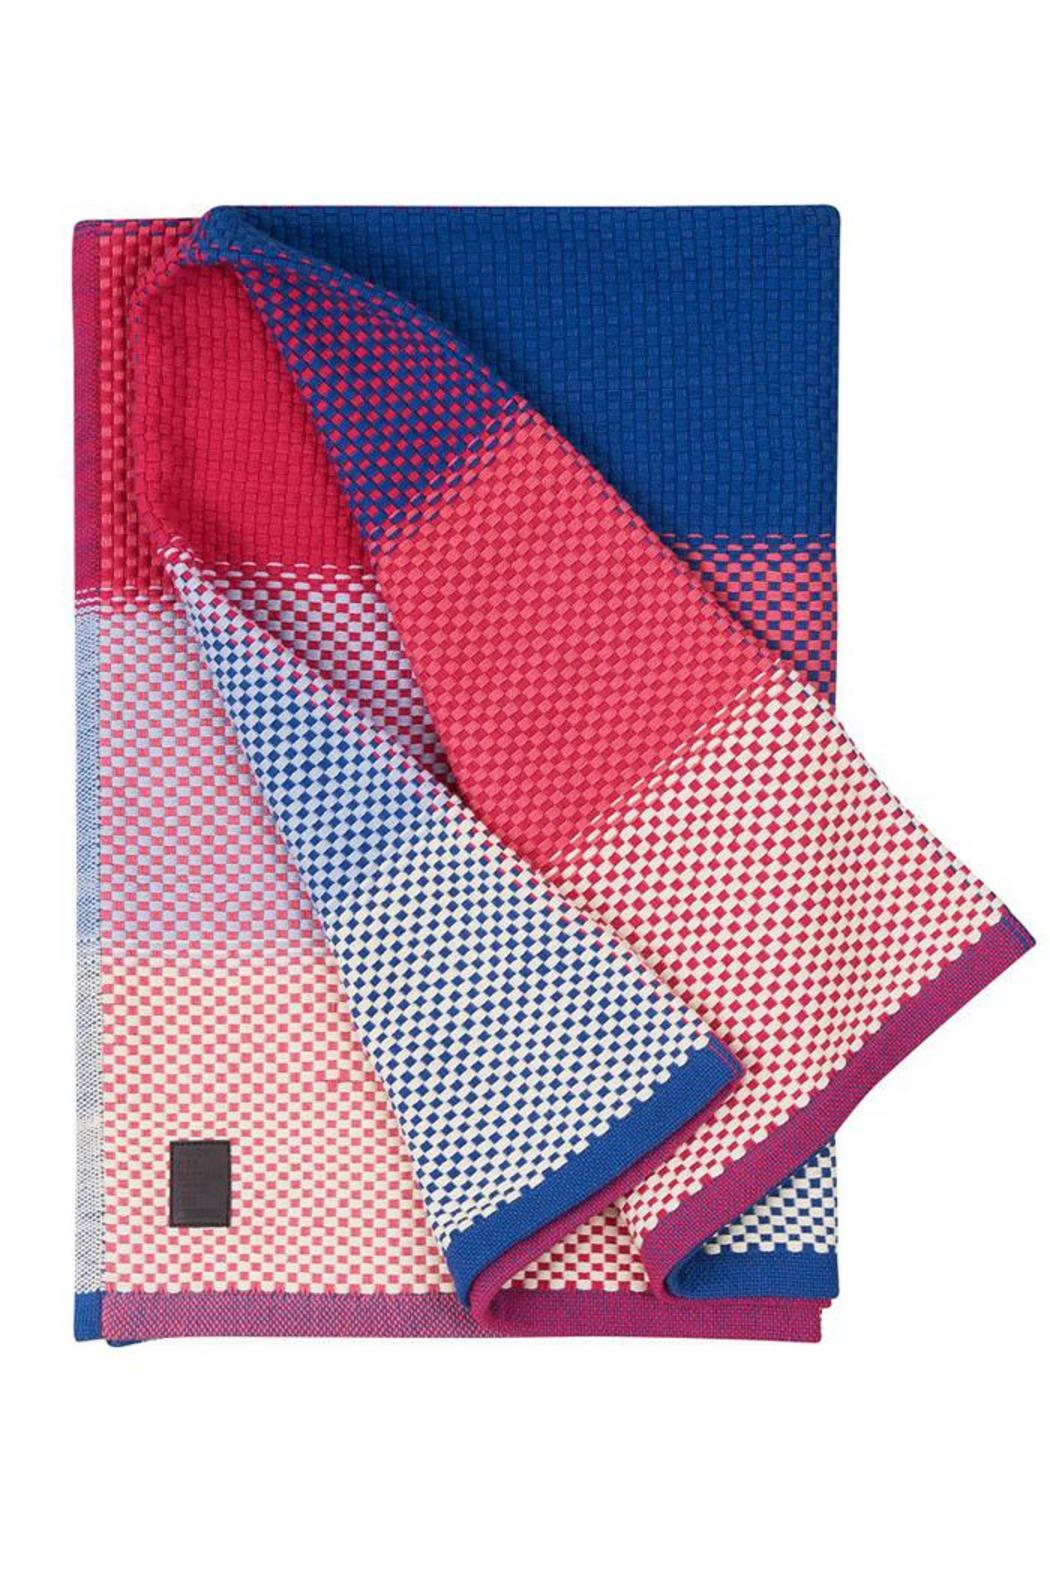 Simon Key Bertman Woven Cotton Throw - Main Image